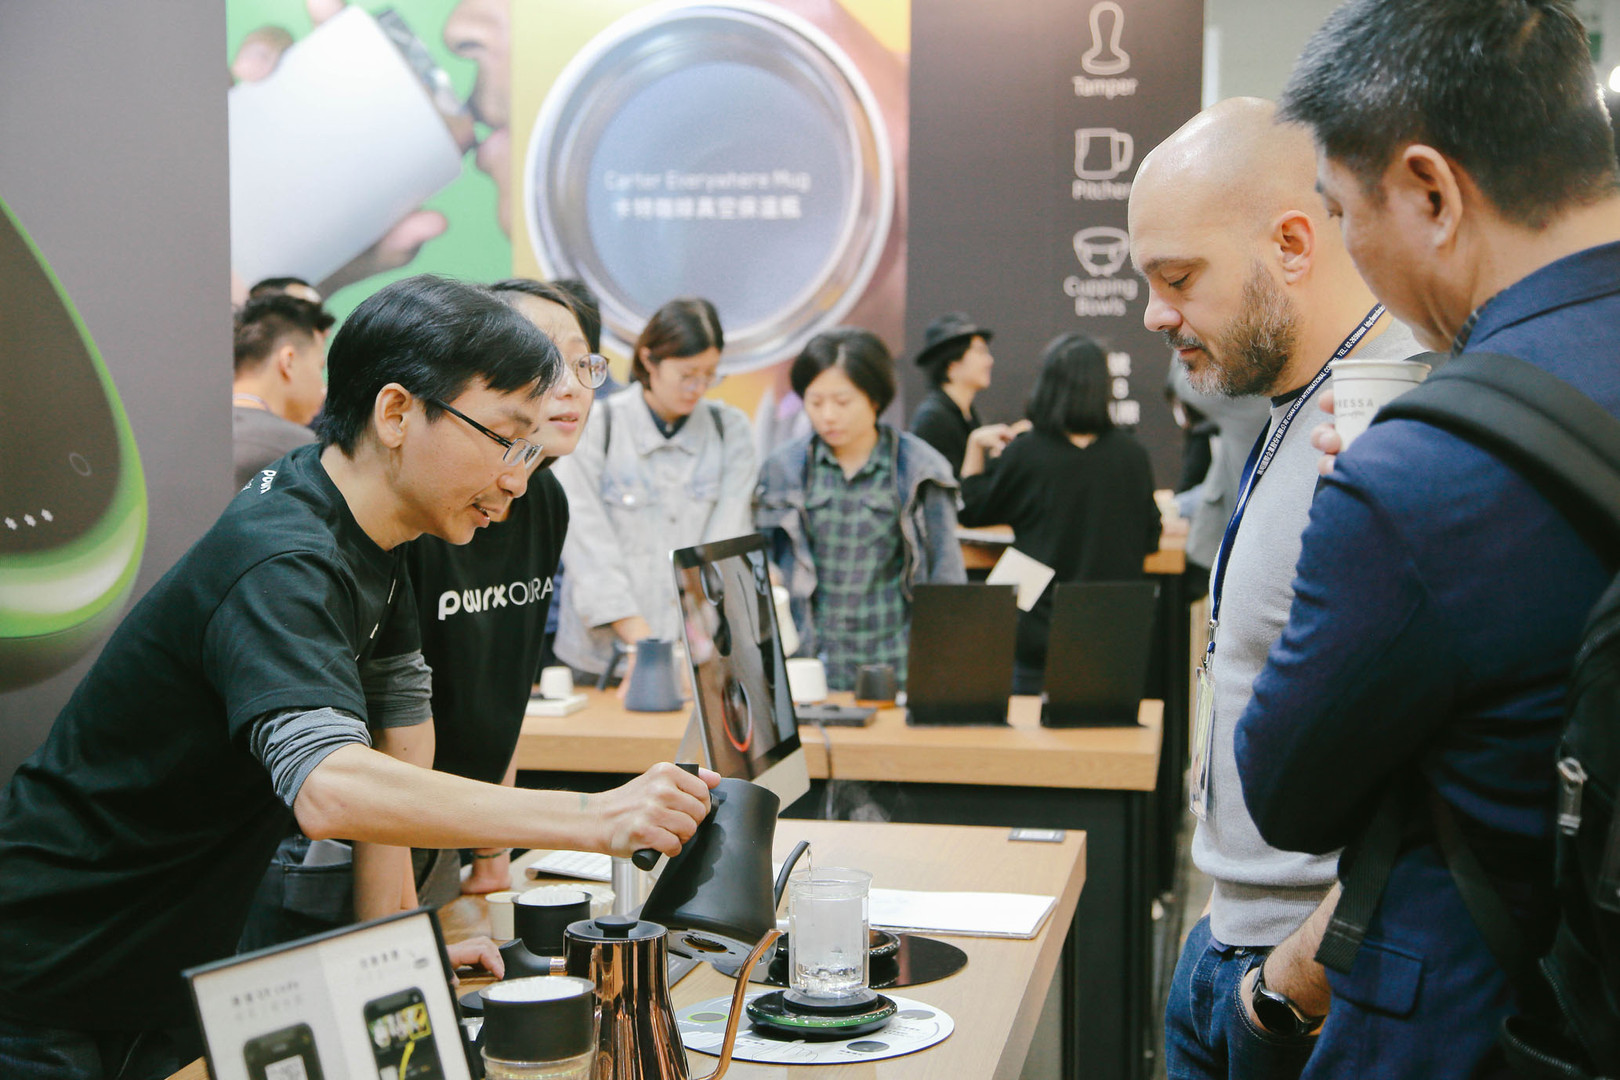 POURX on Taiwan coffee show 2019 - 2.jpg